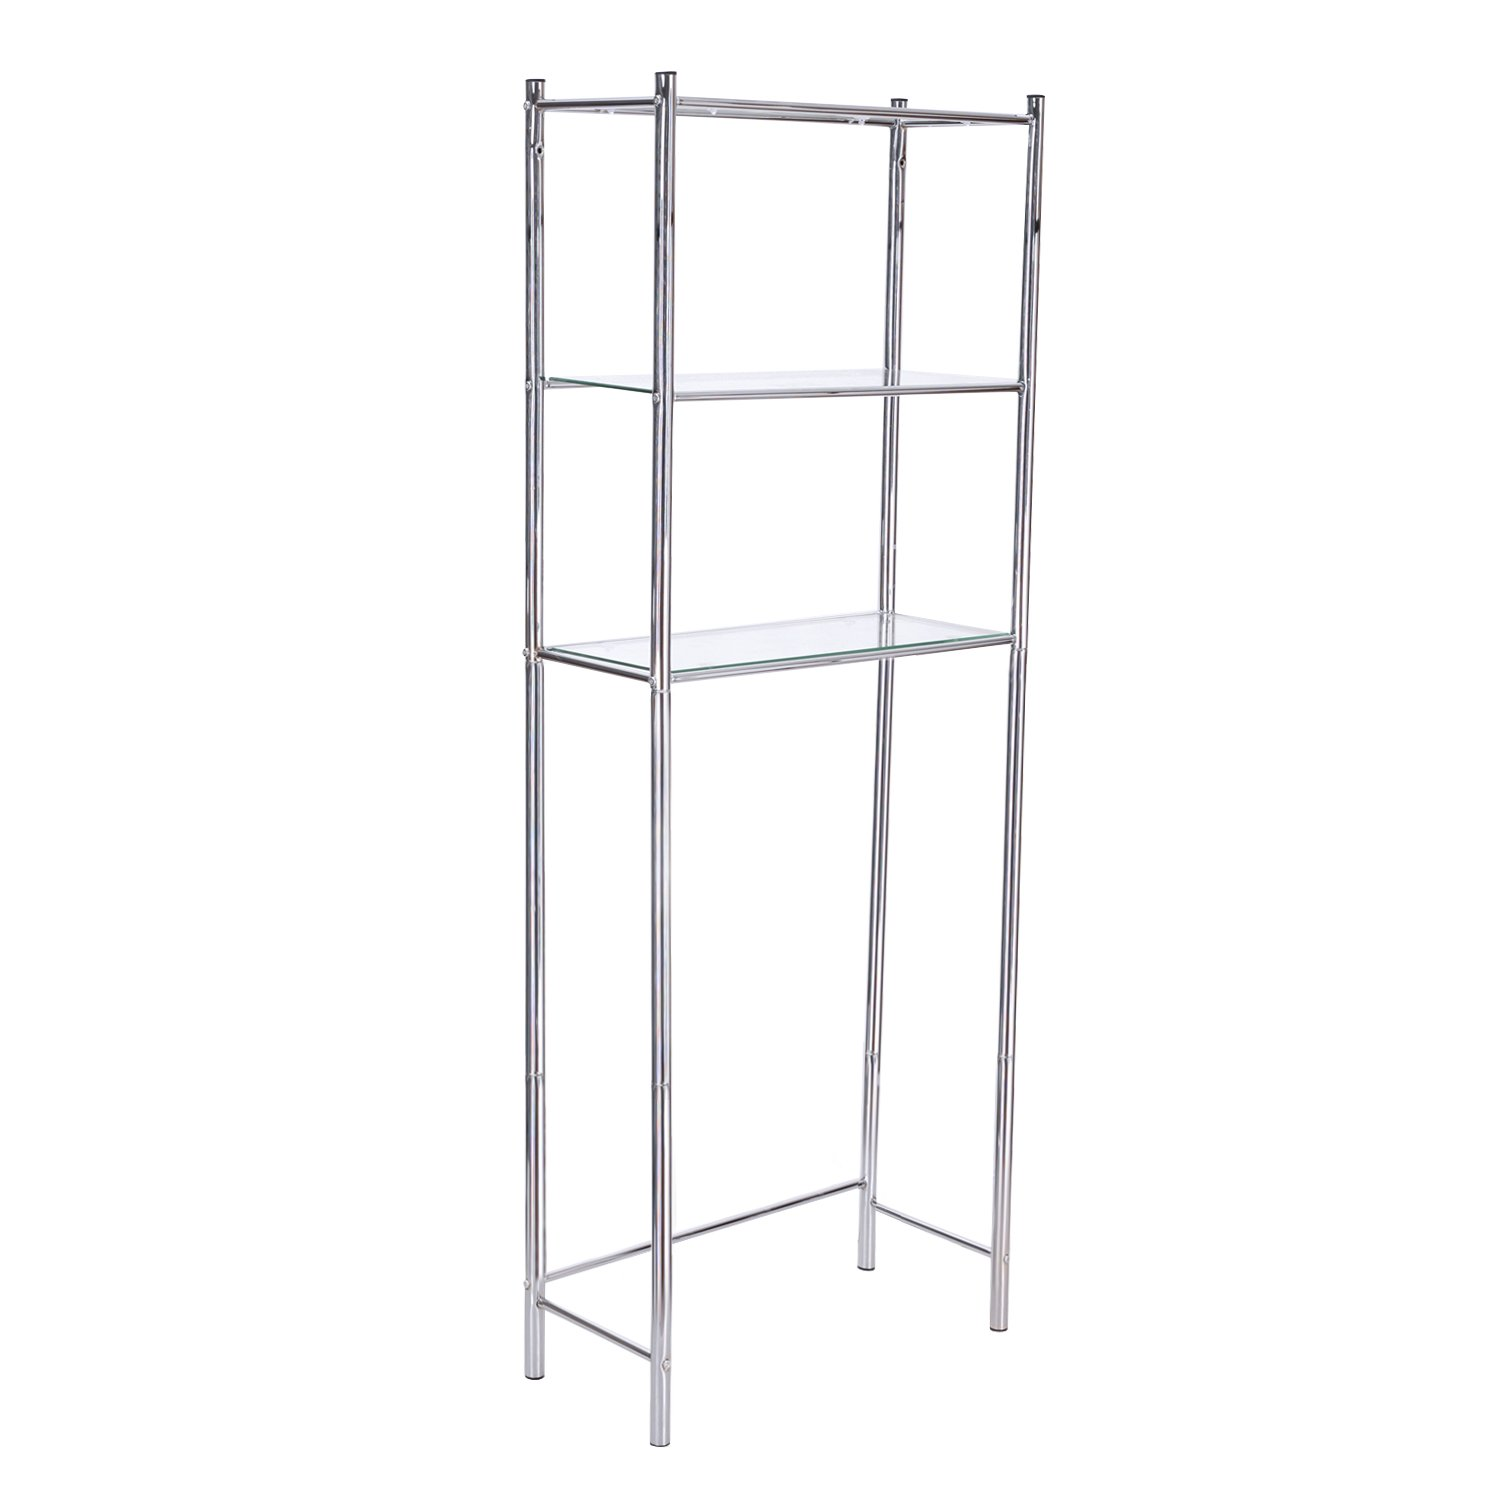 Adeco 11X24.2 inches 3-Tier Bathroom Shelf Space Saver Storage Unit Over Toilet, Glass and Metal, Heights 64.5 Inches